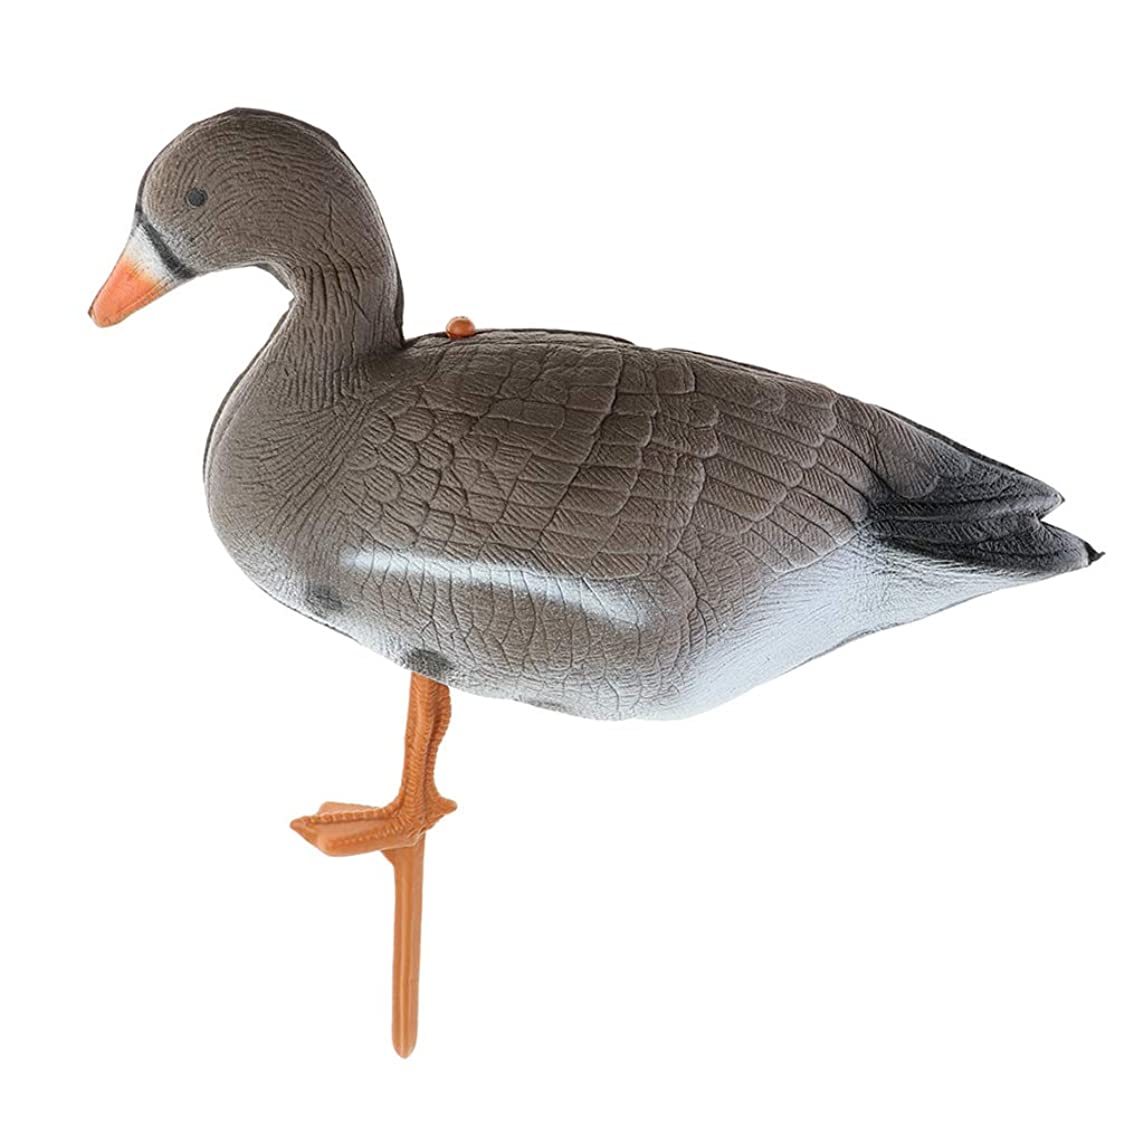 HD Collapsible Duck Decoy Goose Scarecrow Yard Garden Mallard Scarer Gear